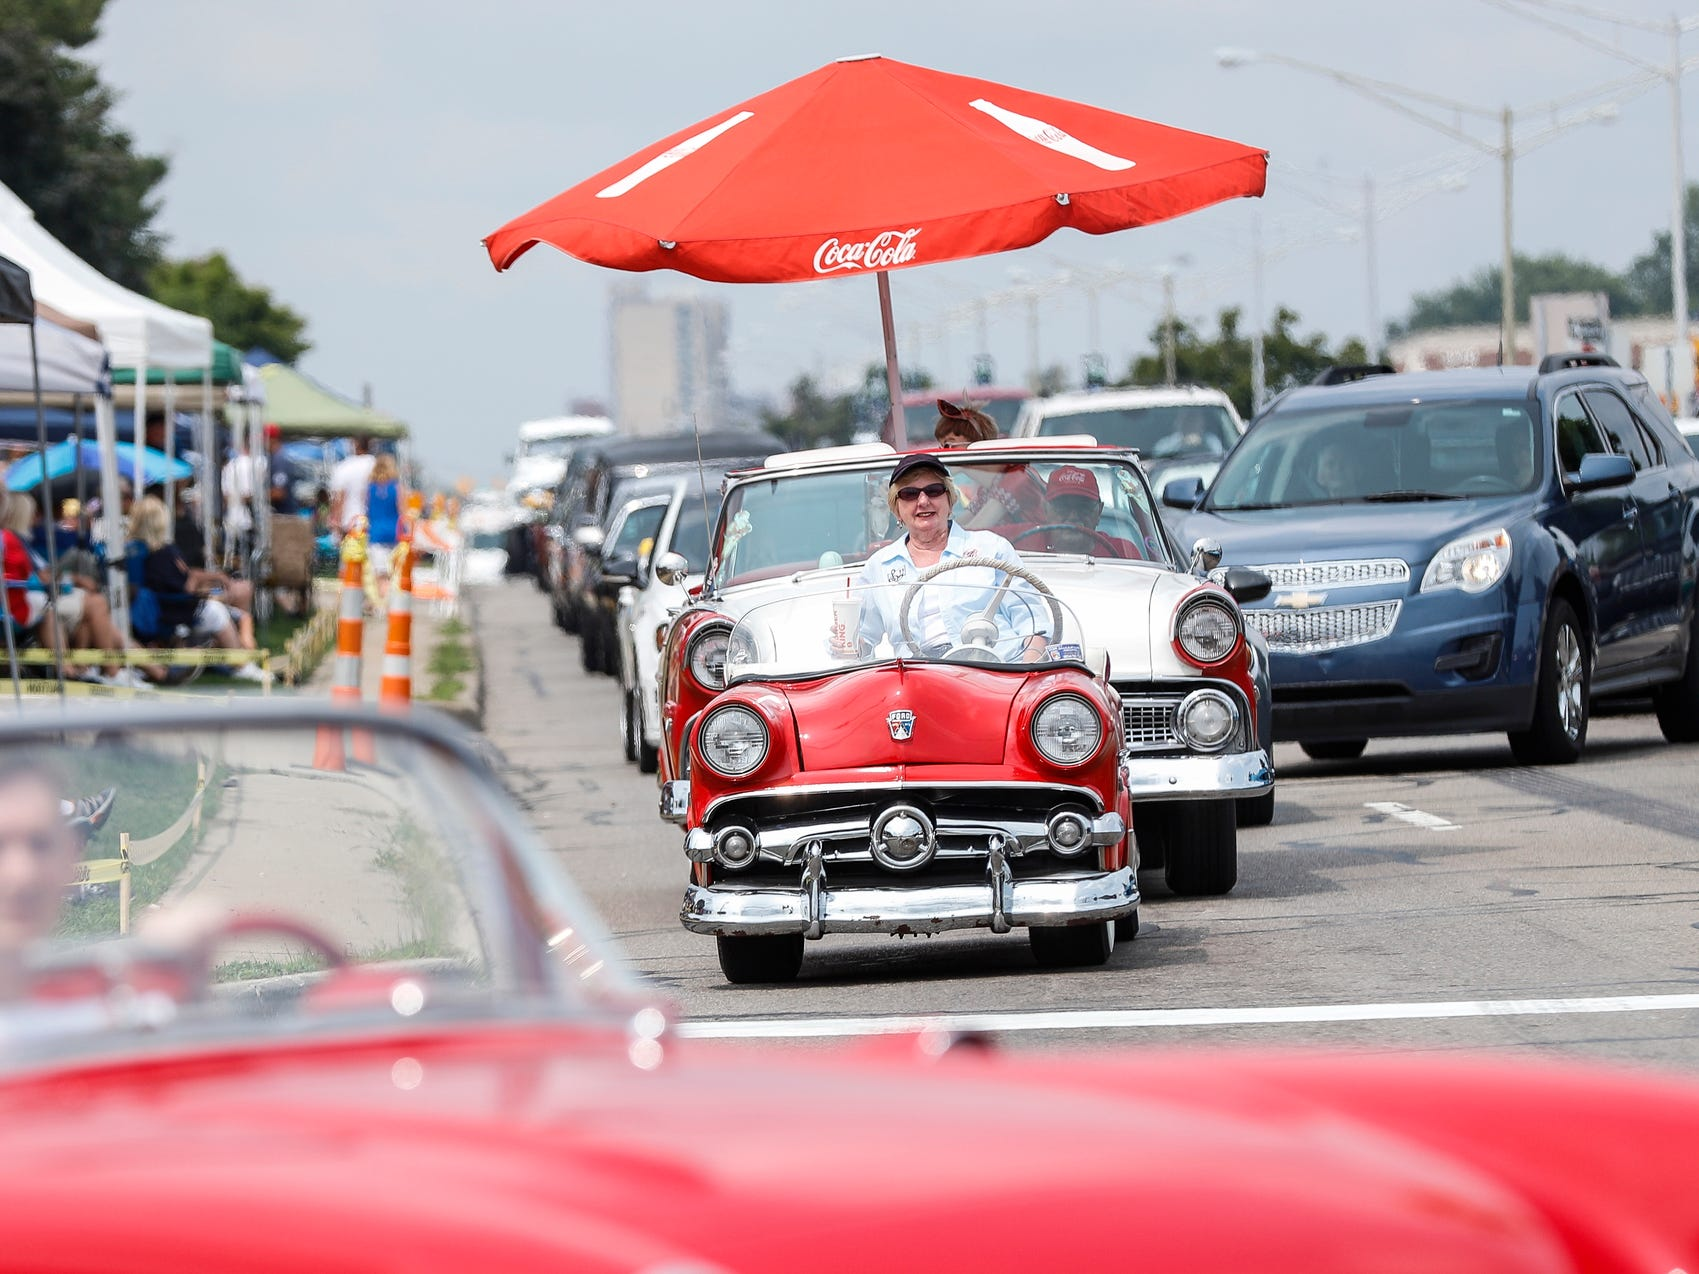 Lorraine Haas of South Lyon, center, drives a 1954 Ford replica golf cart on Woodward Avenue in Royal Oak during Woodward Dream Cruise, Saturday, August 18, 2018.